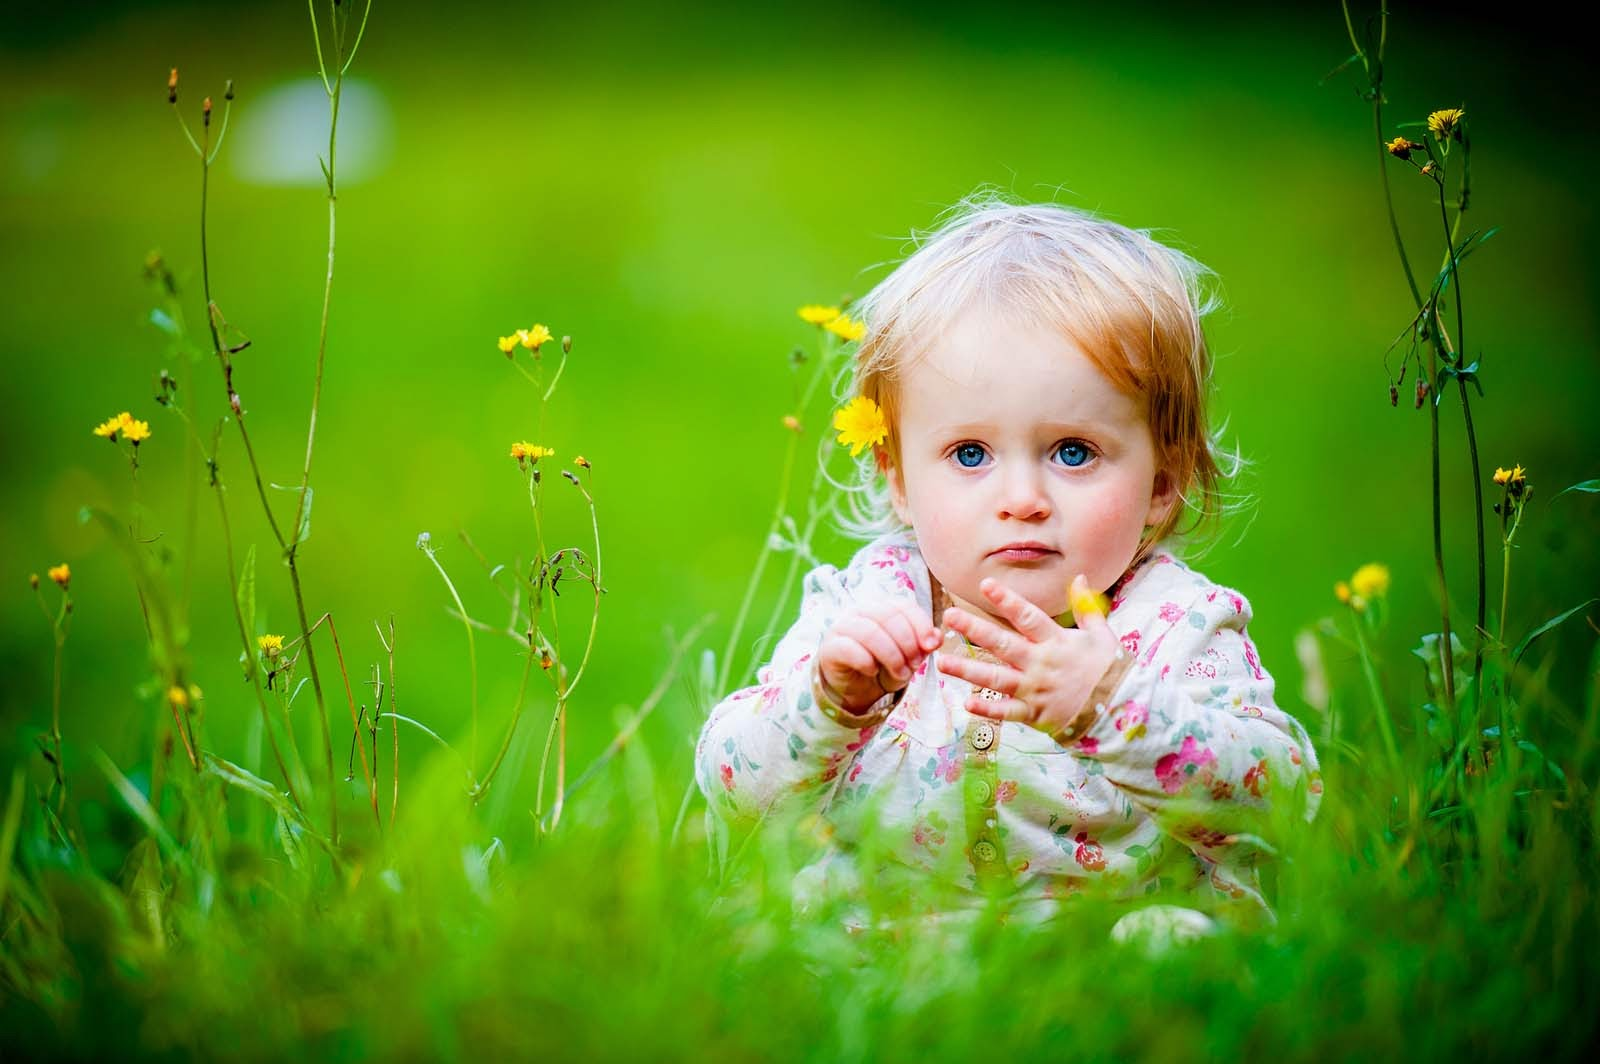 Cute Babies Wallpapers Themes  Android Apps on Google Play 1600x1064